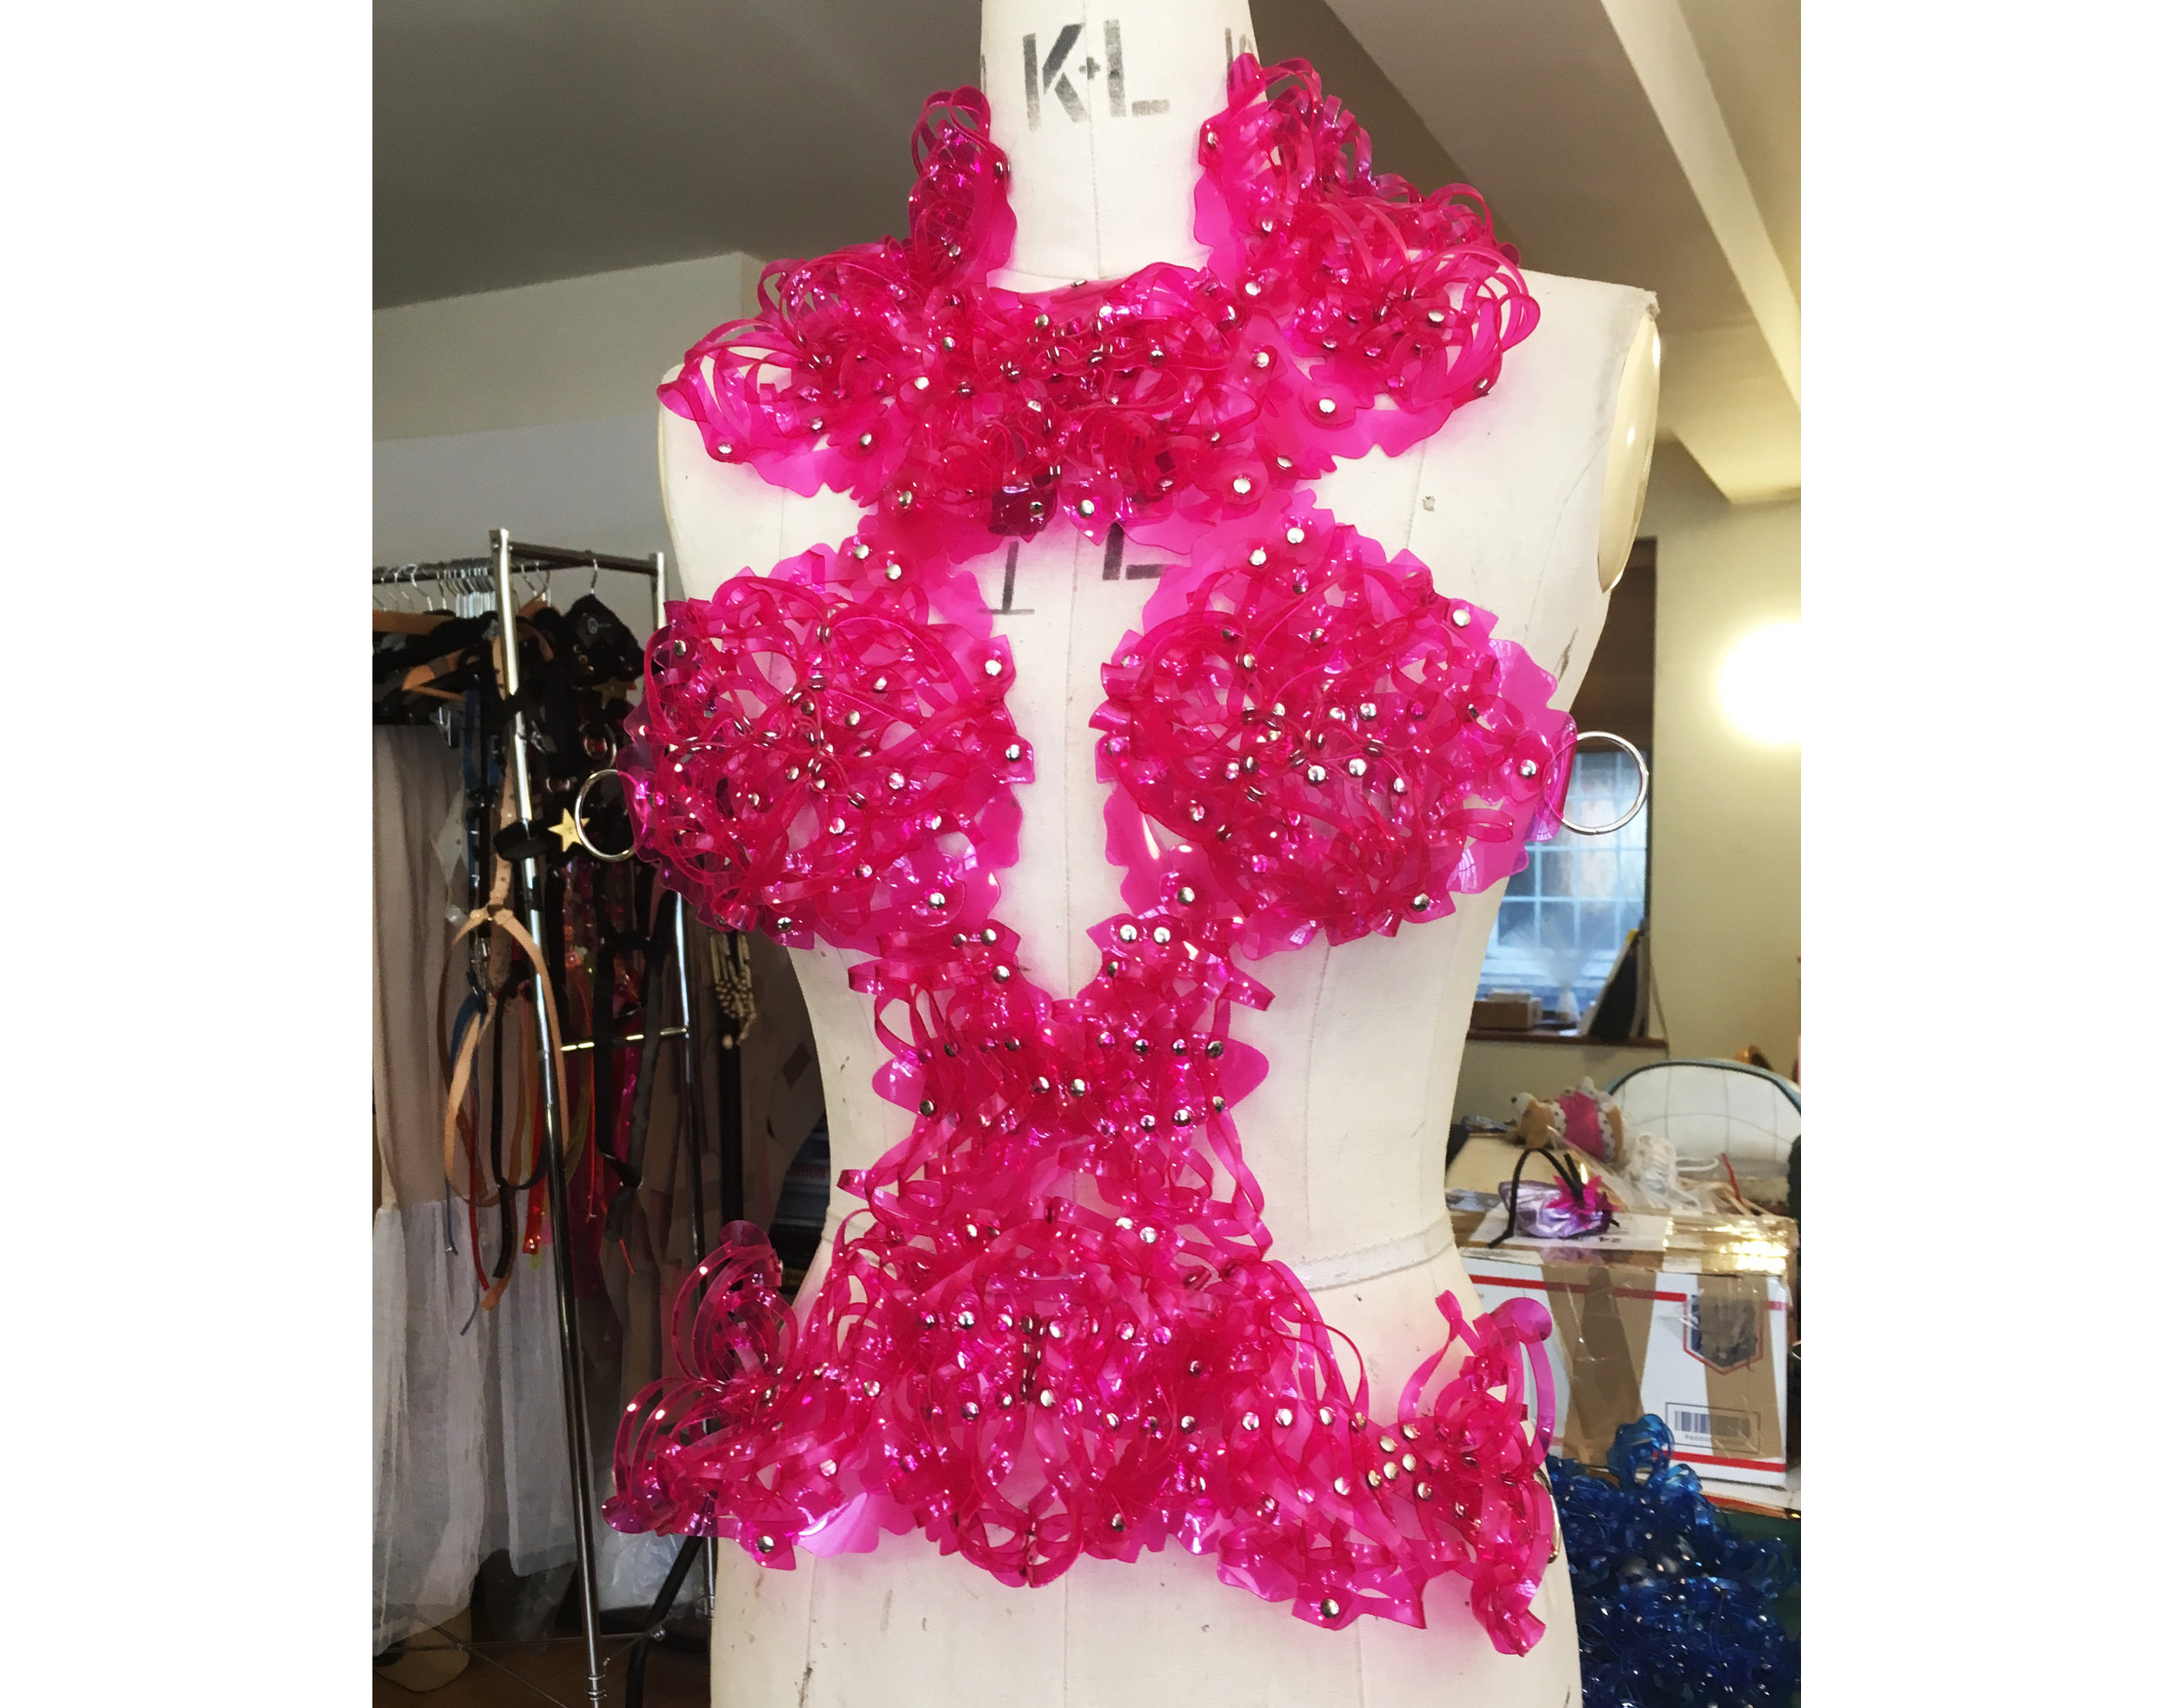 World Princess harness made to order in Rose Pink PVC